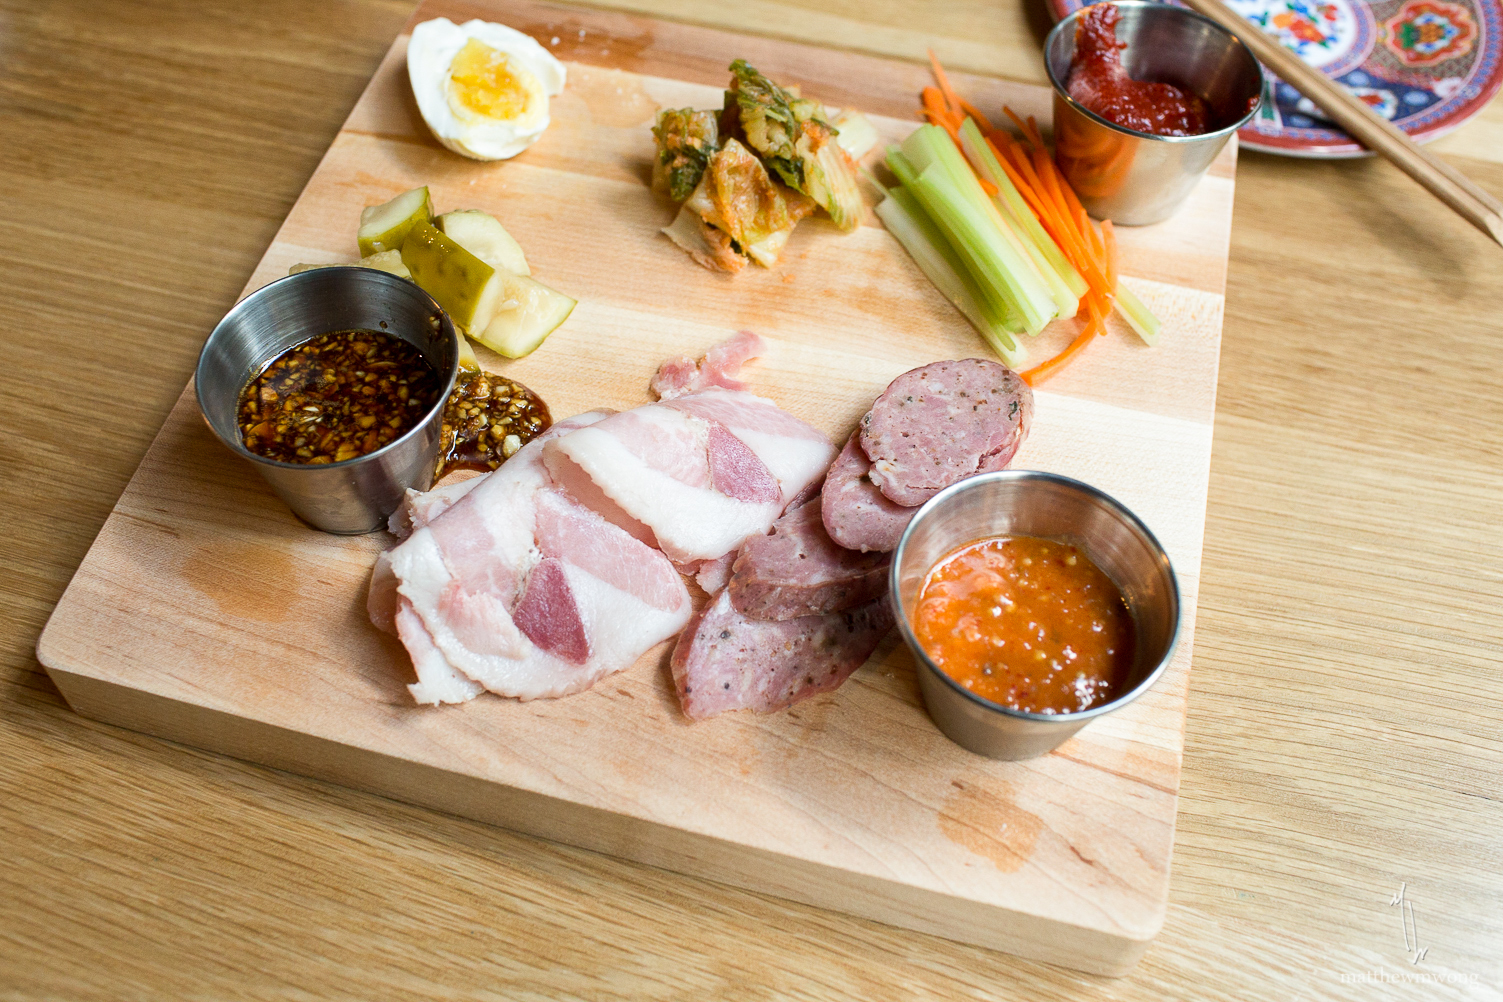 Makan Charcuterie - daily selection of cured, smoked or prepared meats, pickles and vegetables